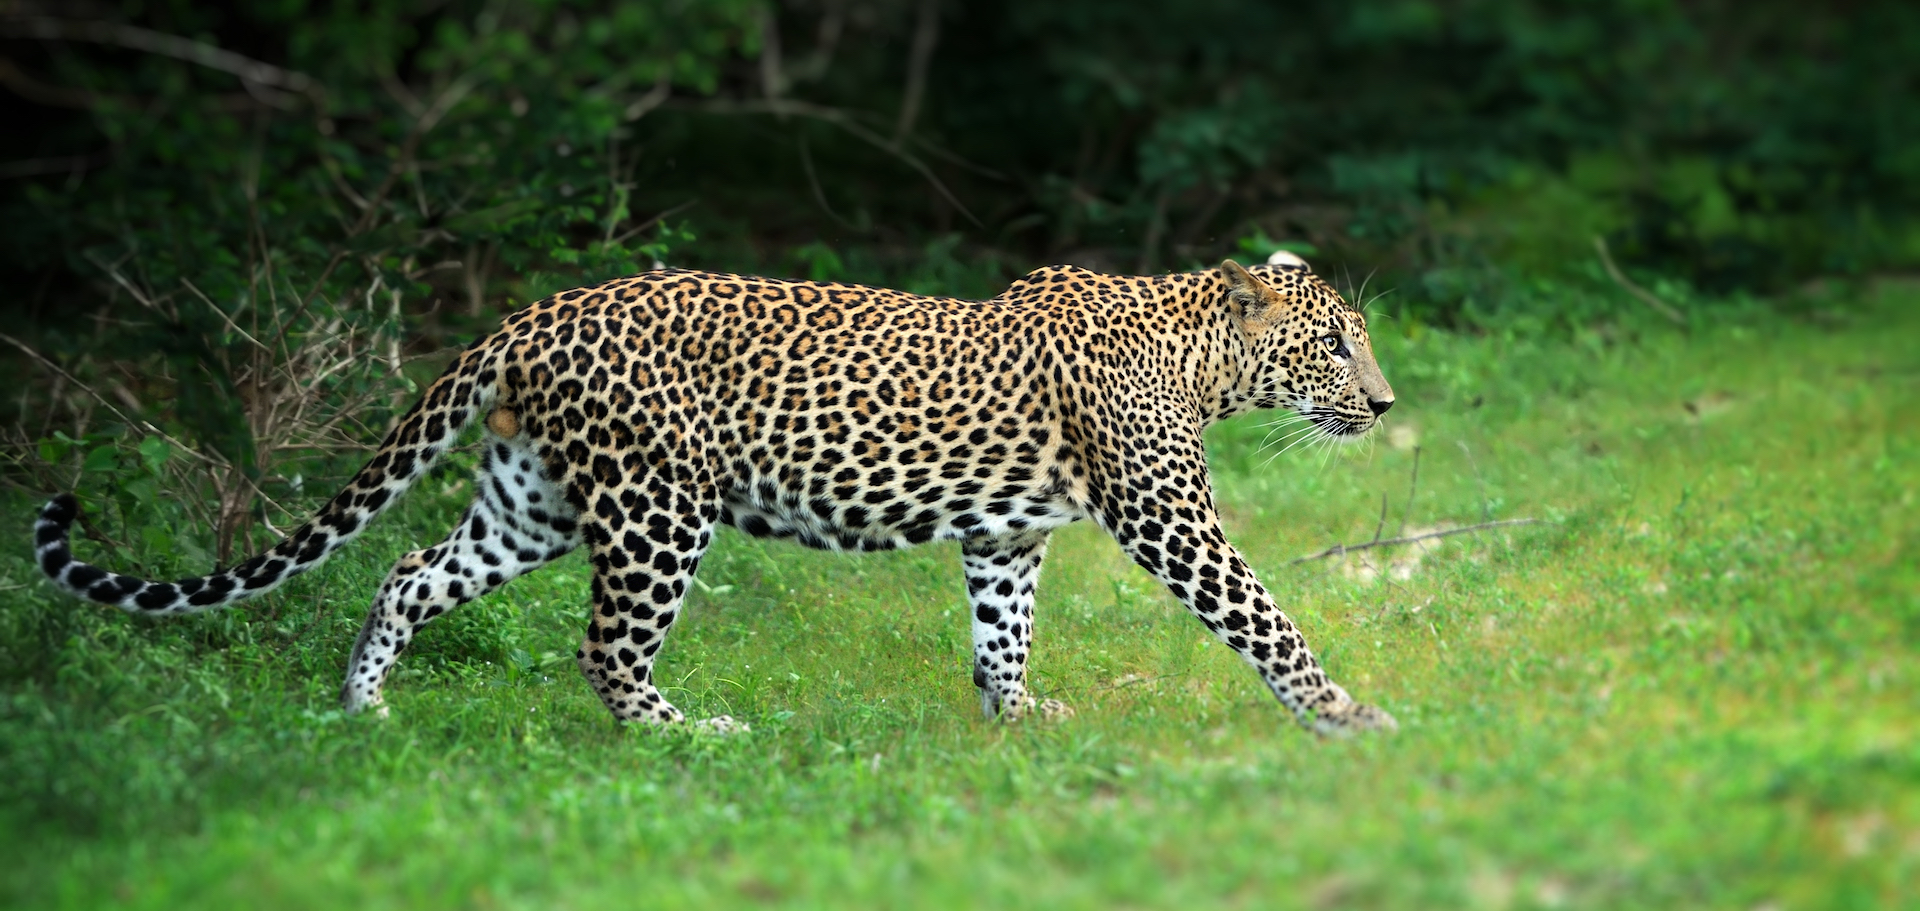 Leopard sighting in Cameroon raises hopes of conservationists